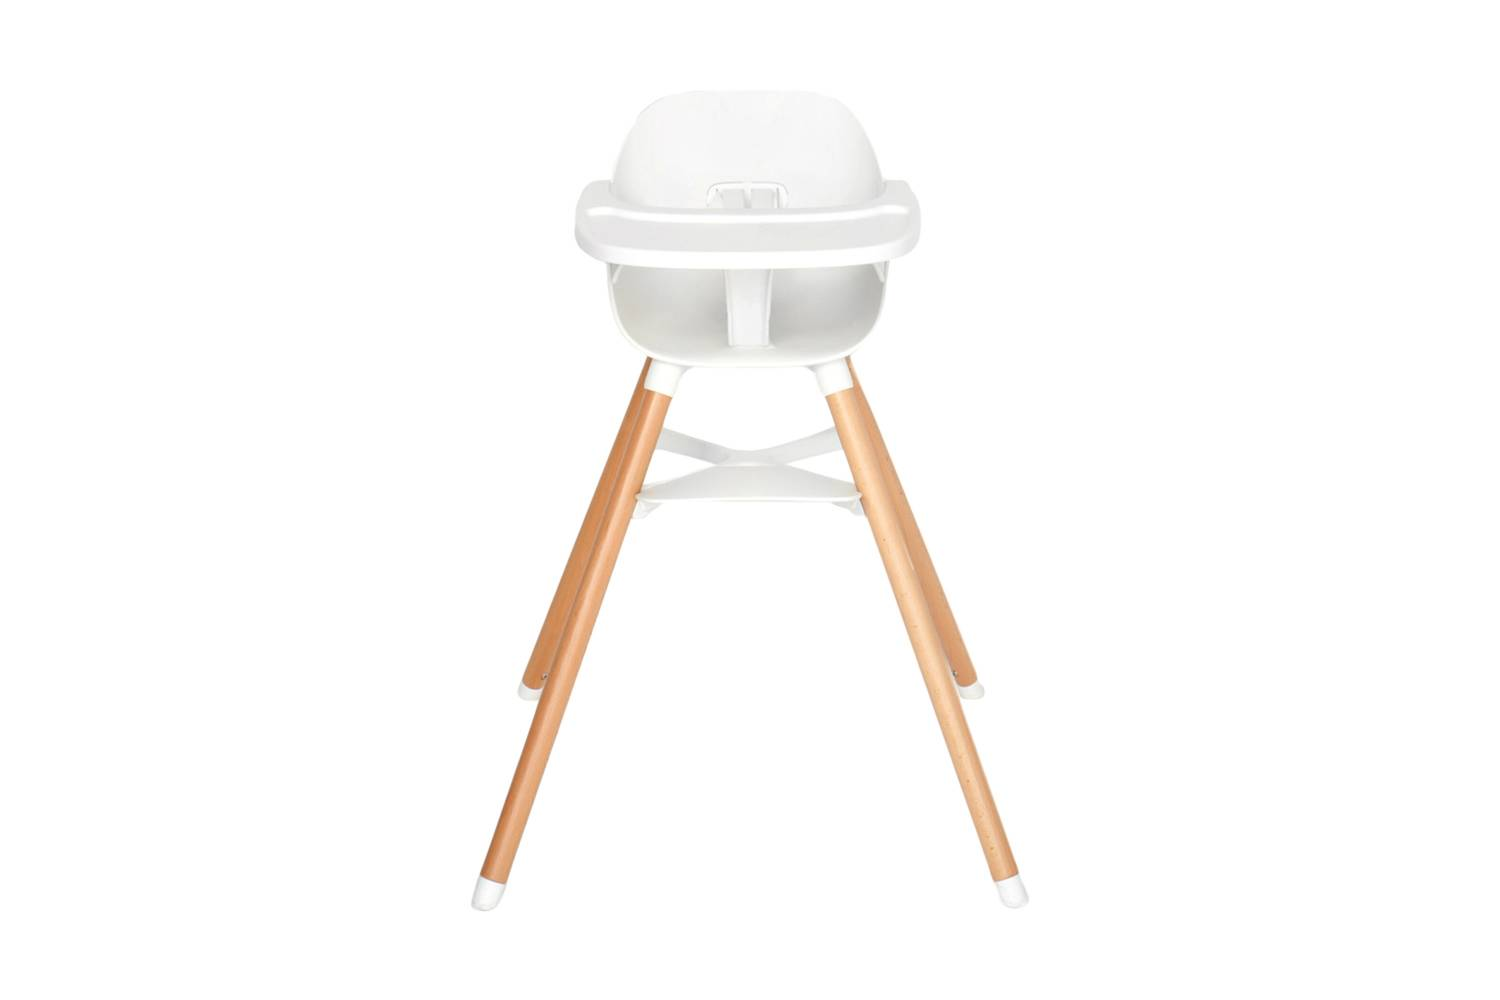 The Chair Full Kit in Coconut white from Lalo is $